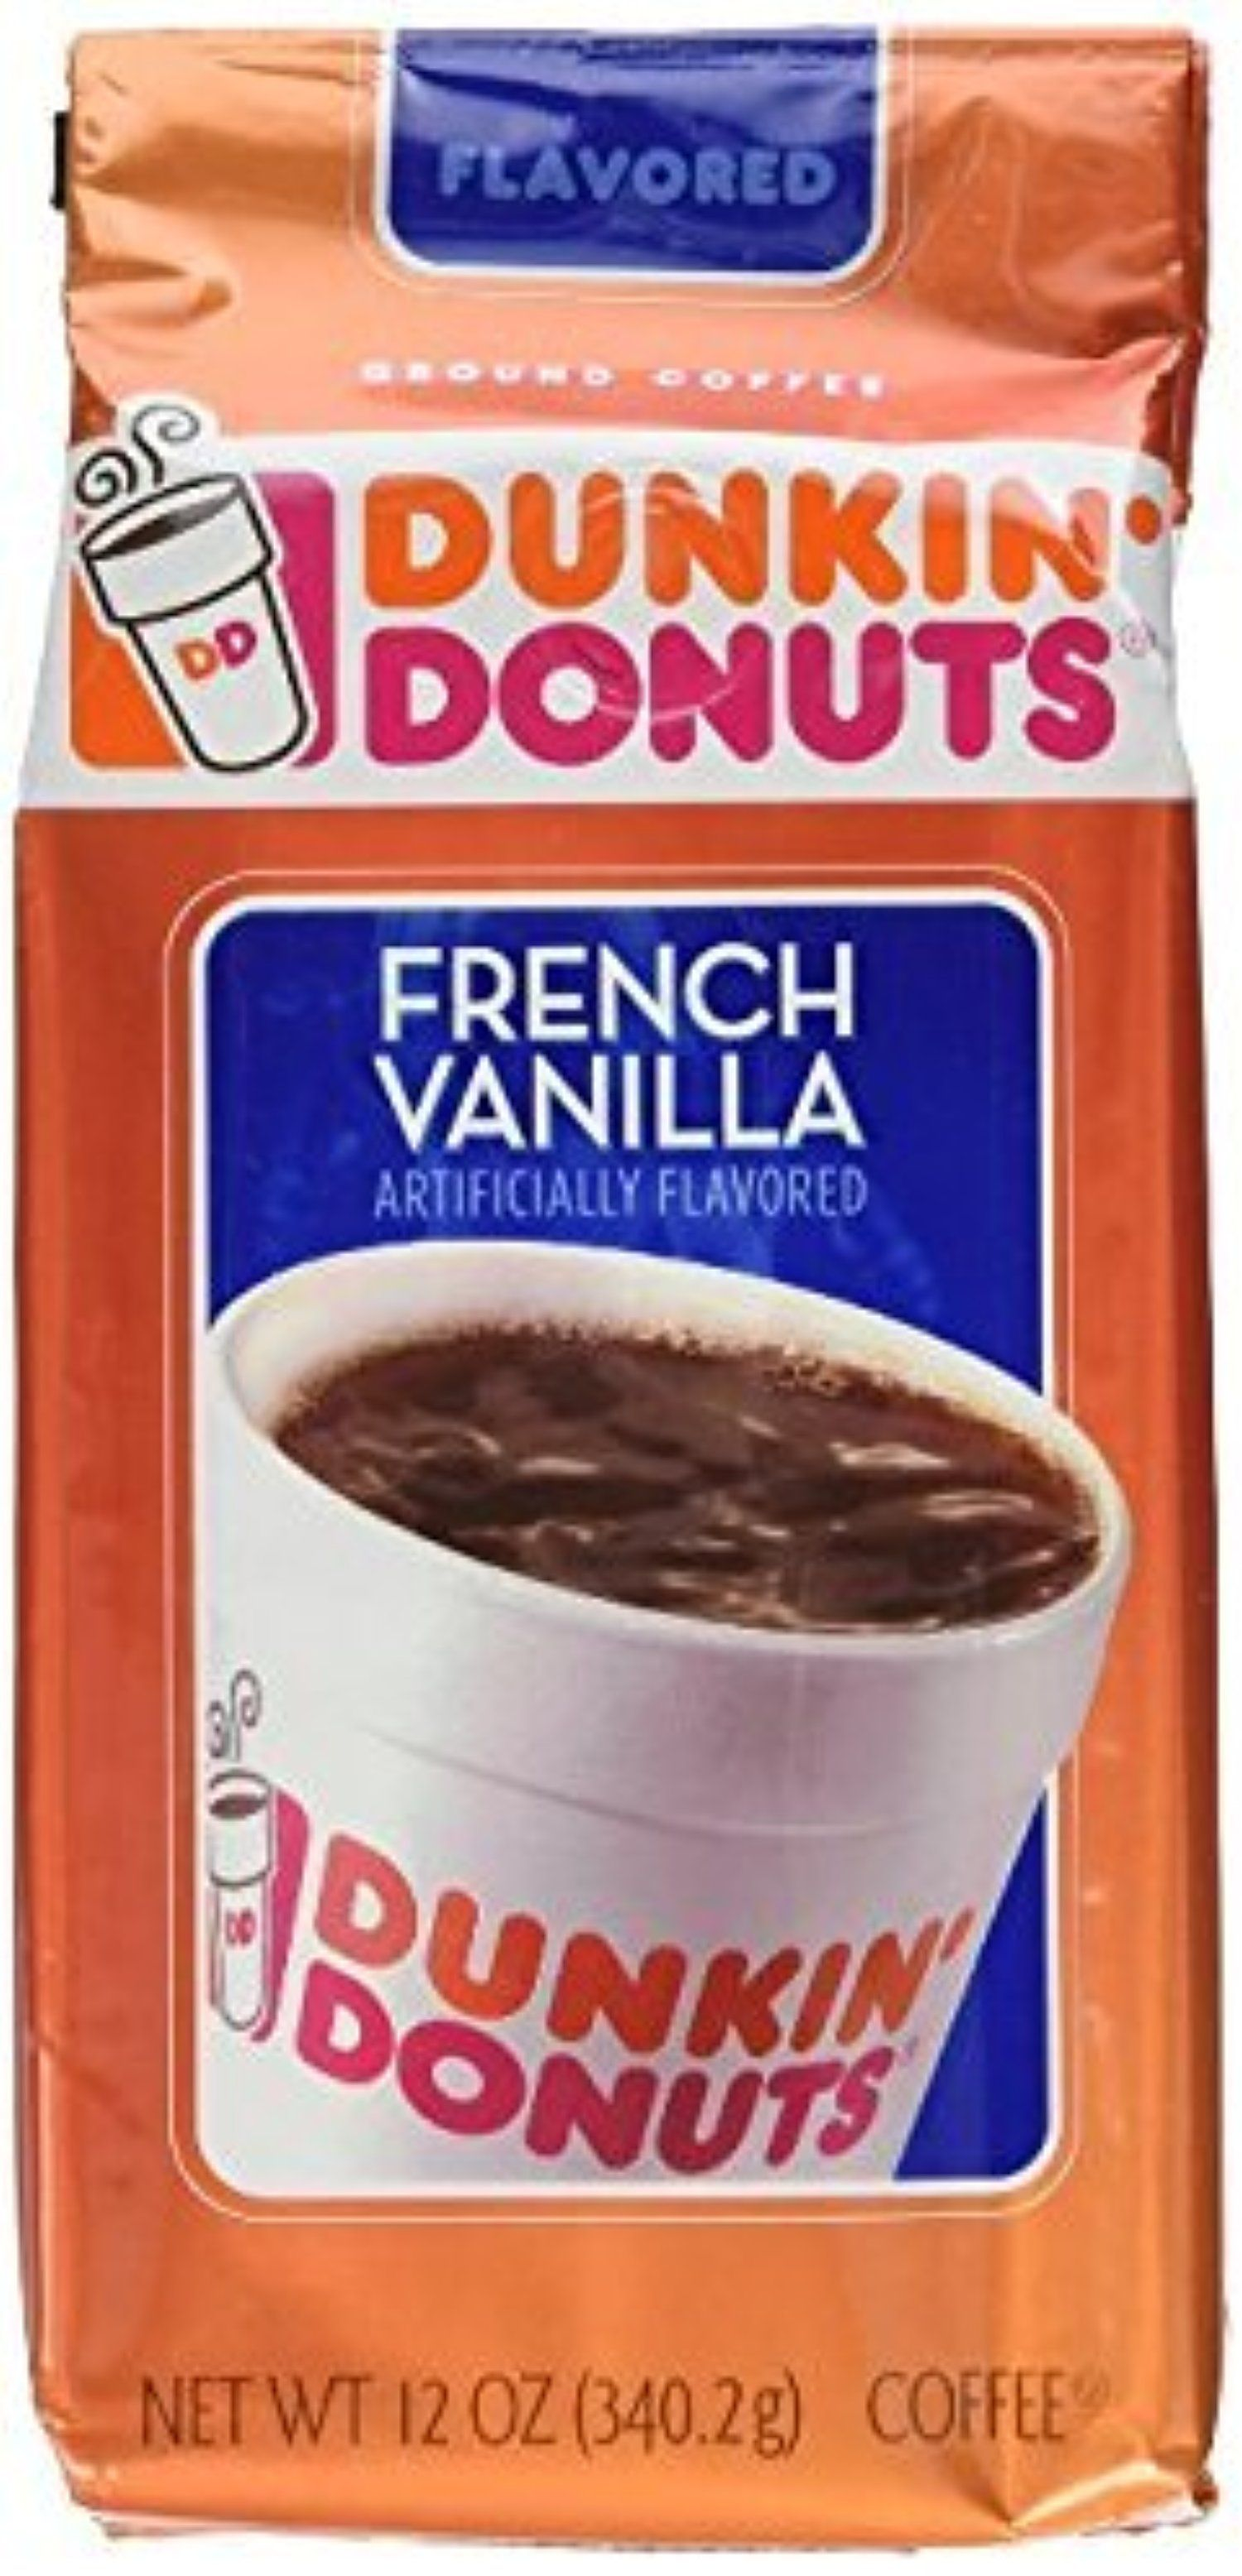 Dunkin' Donuts French Vanilla Ground Coffee (11 oz.) (PACK